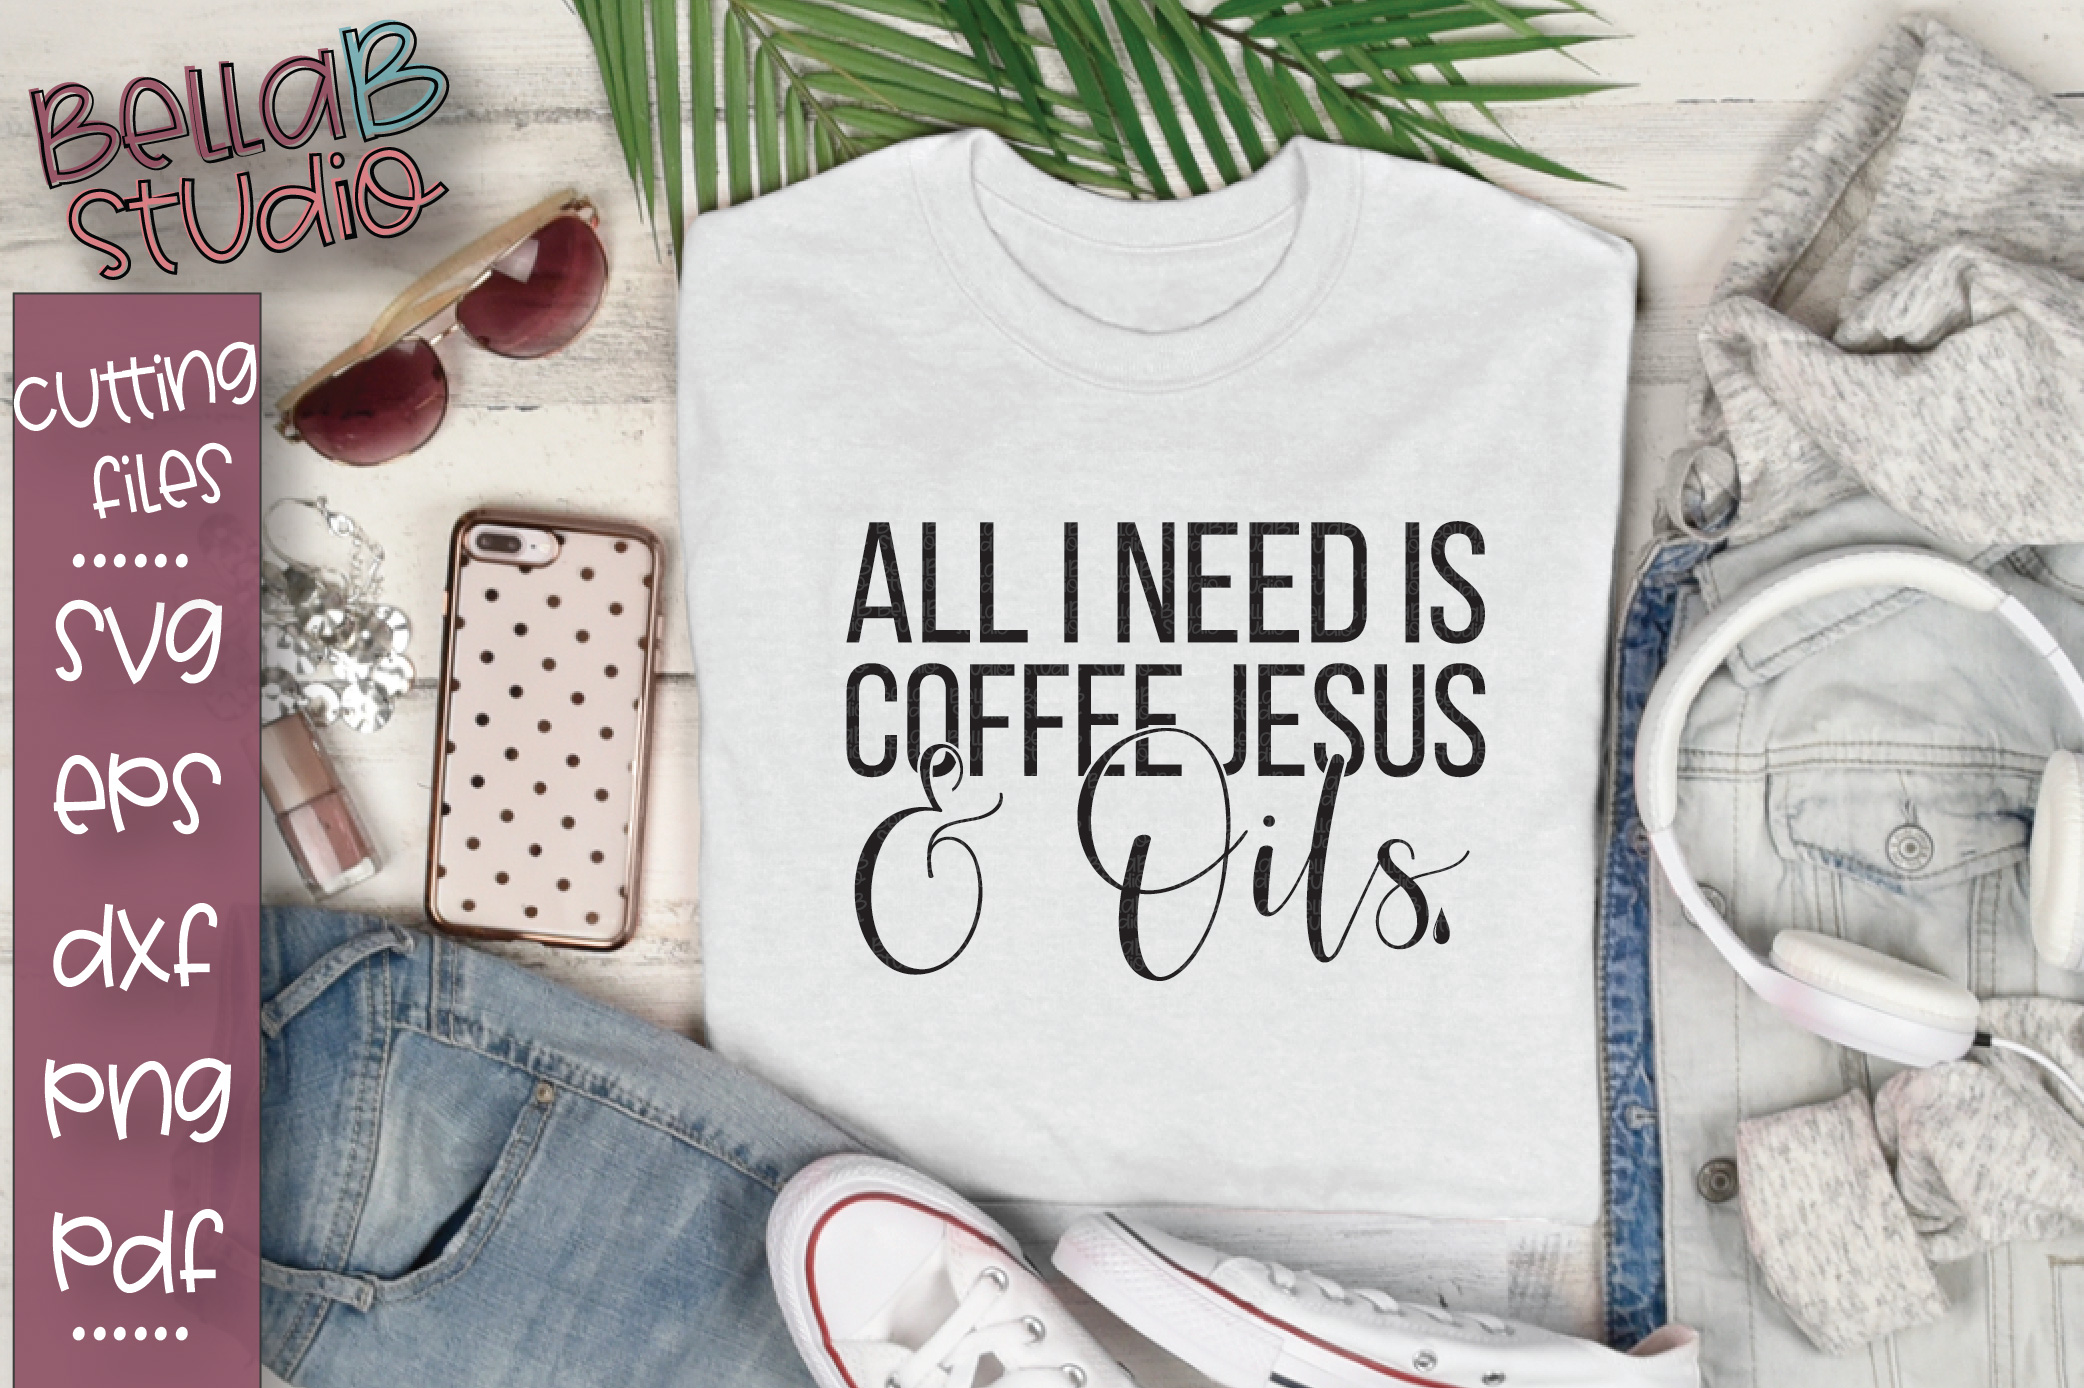 Essential Oils SVG, All I Need Is Coffee Jesus And Oils SVG example image 1